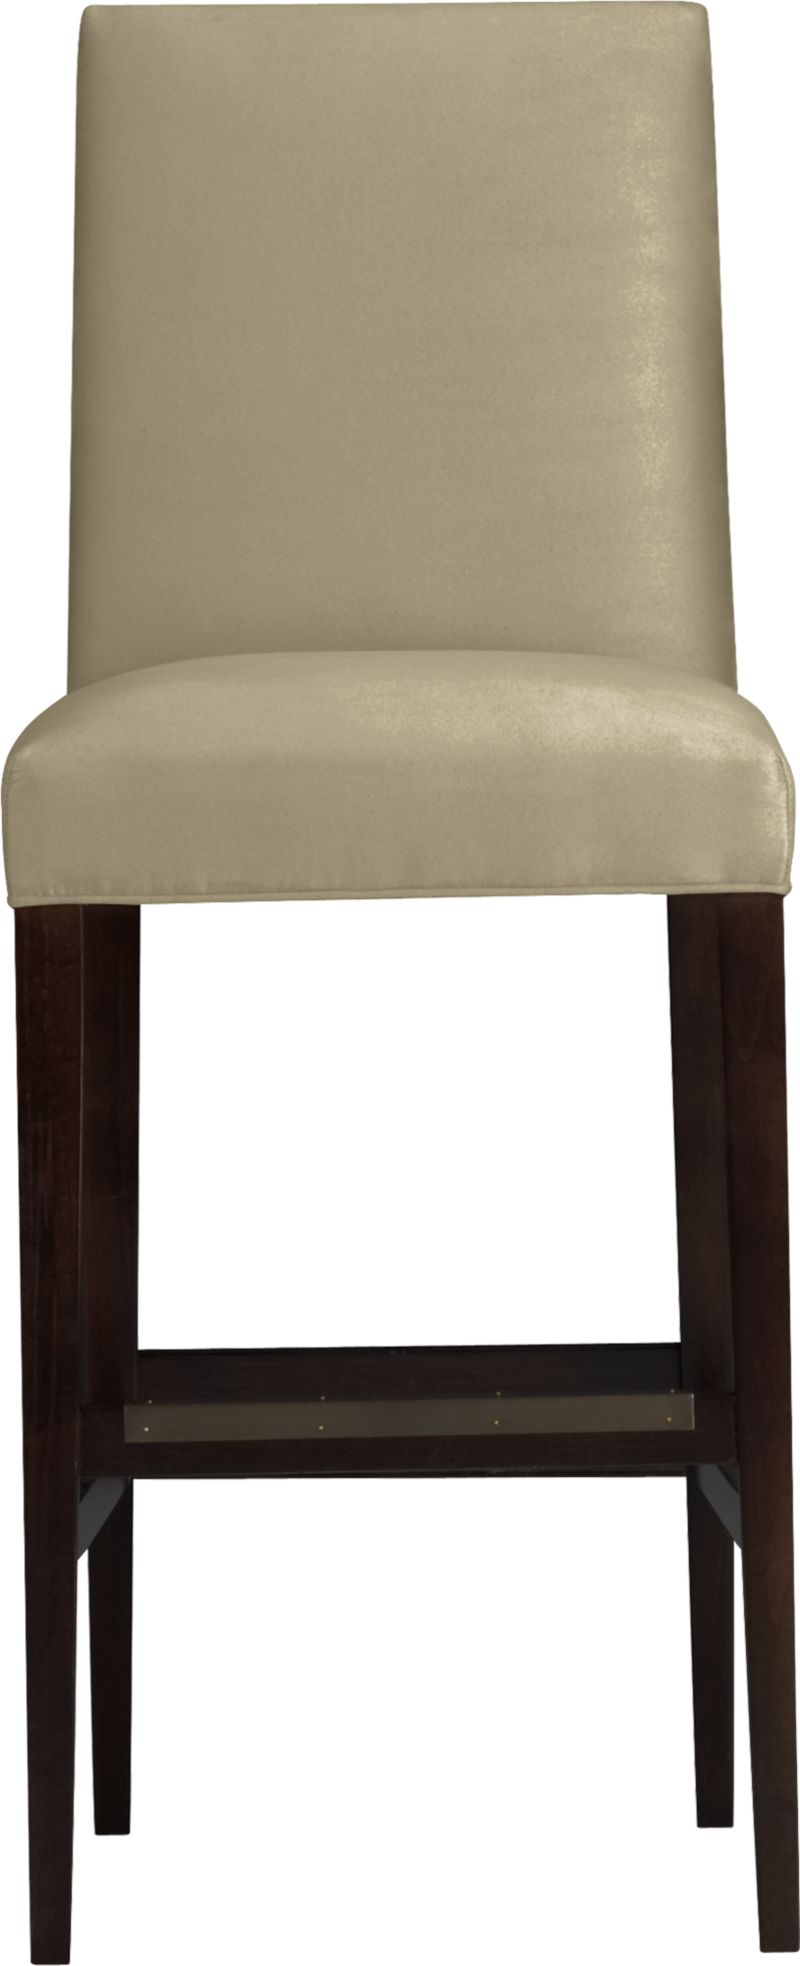 """Our Miles barstool is a fresh new classic with polished proportions and casual formality. Padded seat and gently curved back are upholstered in an easy-care textural poly blend in neutral sand. Slim hickory-colored hardwood legs taper gracefully to the floor.<br /><br />After you place your order, we will send a fabric swatch via next day air for your final approval. We will contact you to verify both your receipt and approval of the fabric swatch before finalizing your order.<br /><br /><NEWTAG/><ul><li>Eco-friendly construction</li><li>Certified sustainable solid engineered hardwood frame</li><li>Soy- or plant-based polyfiber cushions</li><li>Solid maple legs with a hickory finish</li><li>Poly-cotton blend fabric</li><li>30""""H seat sized for bars</li><li>Made in North Carolina, USA</li></ul>"""